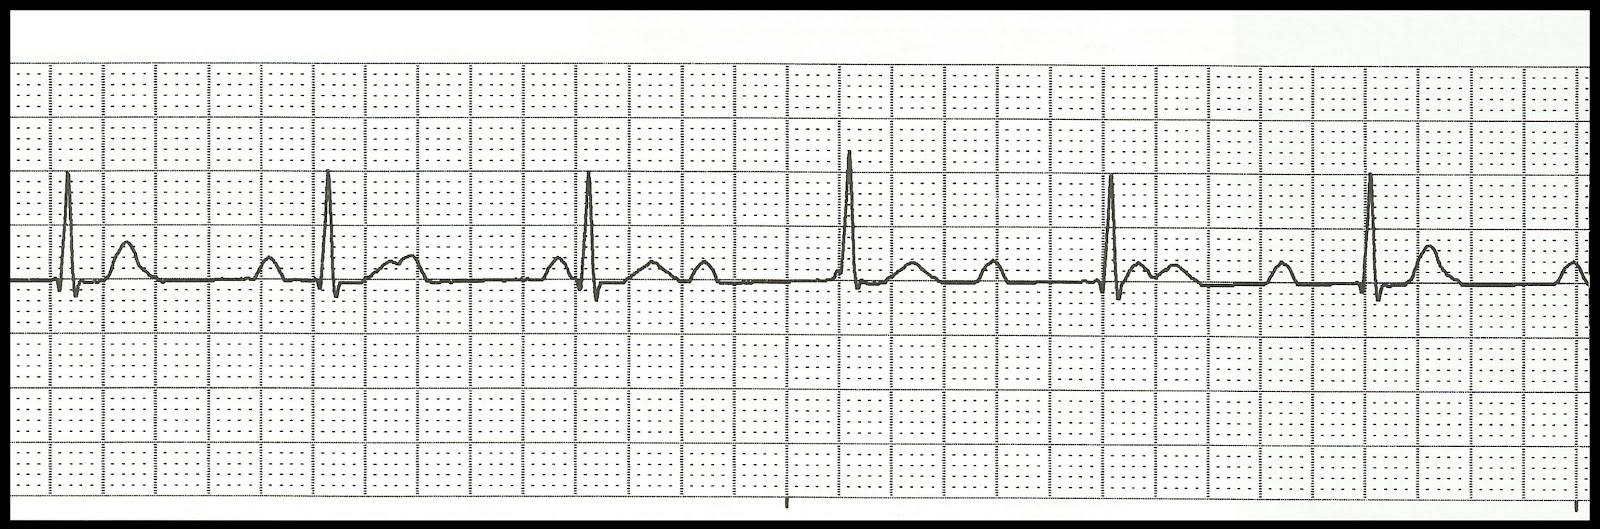 ekg rhythm strips of heart block organization your